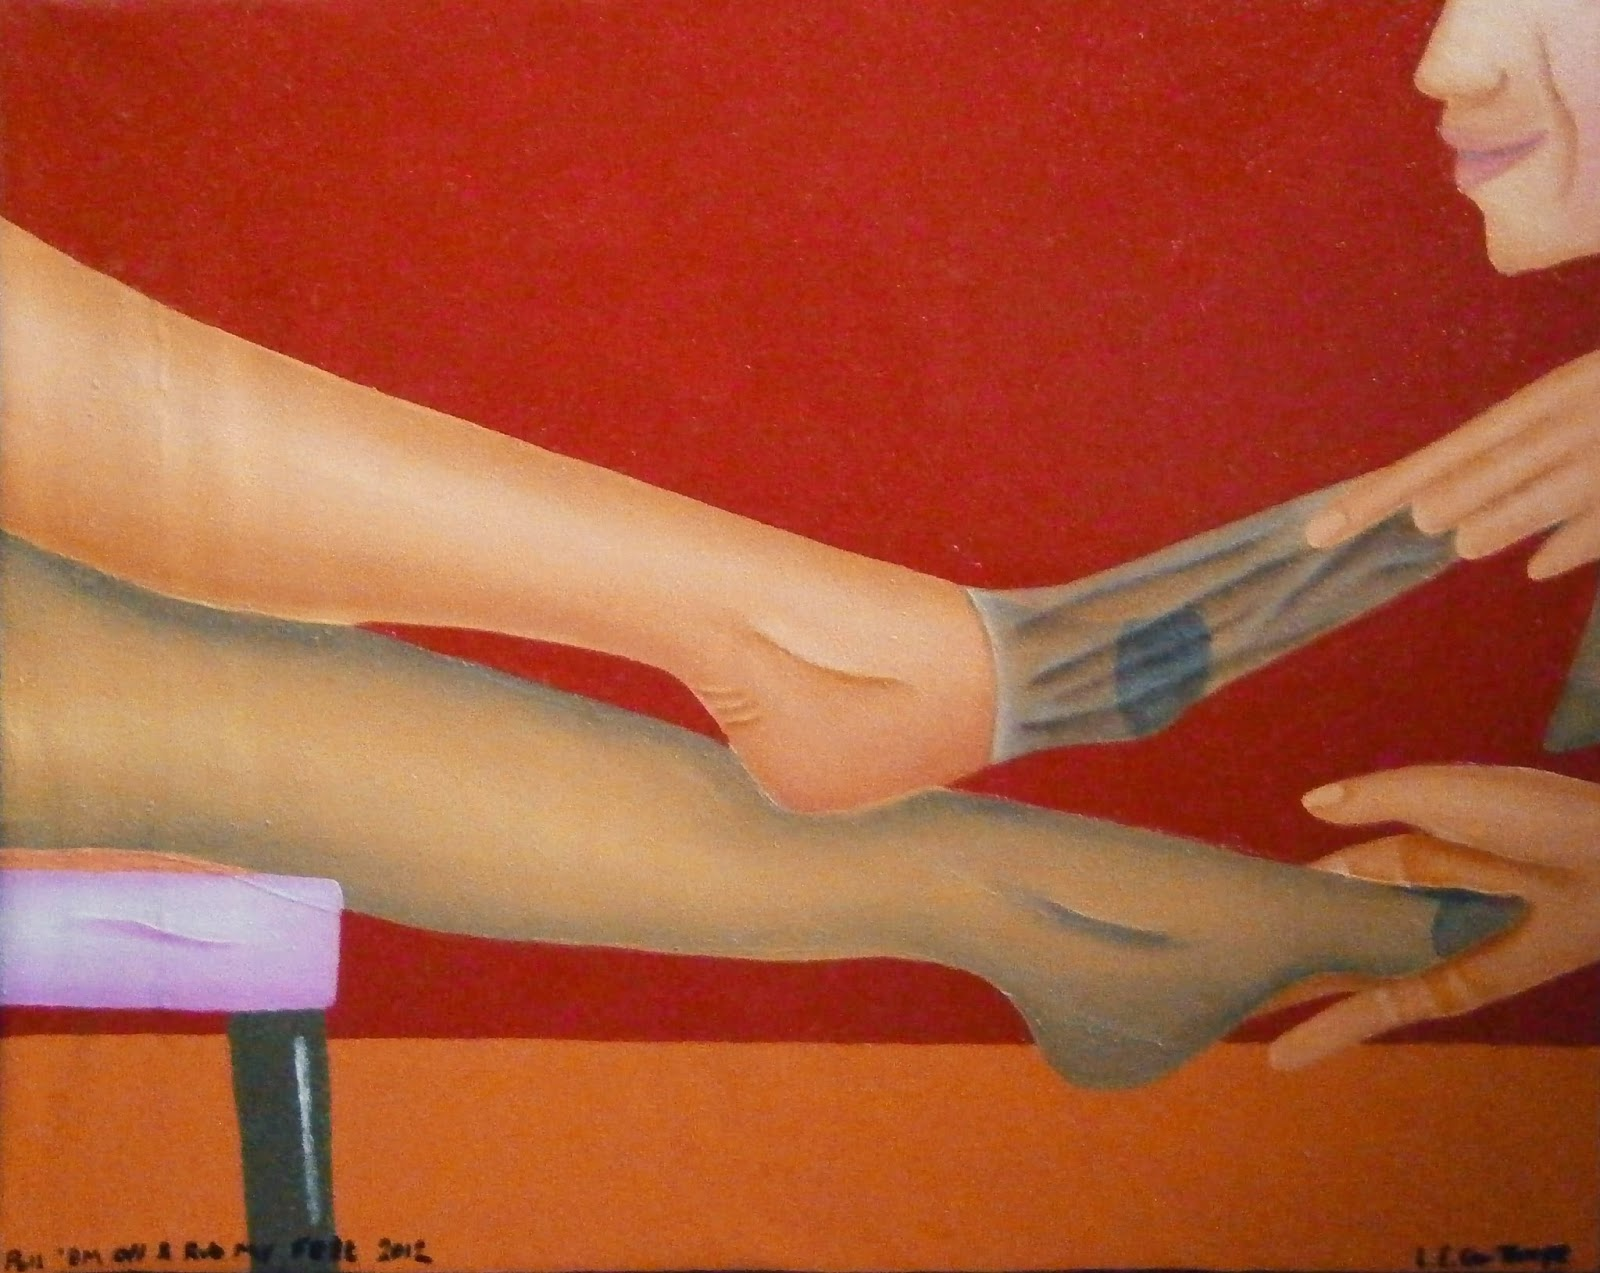 A man pulling off a women's stockings